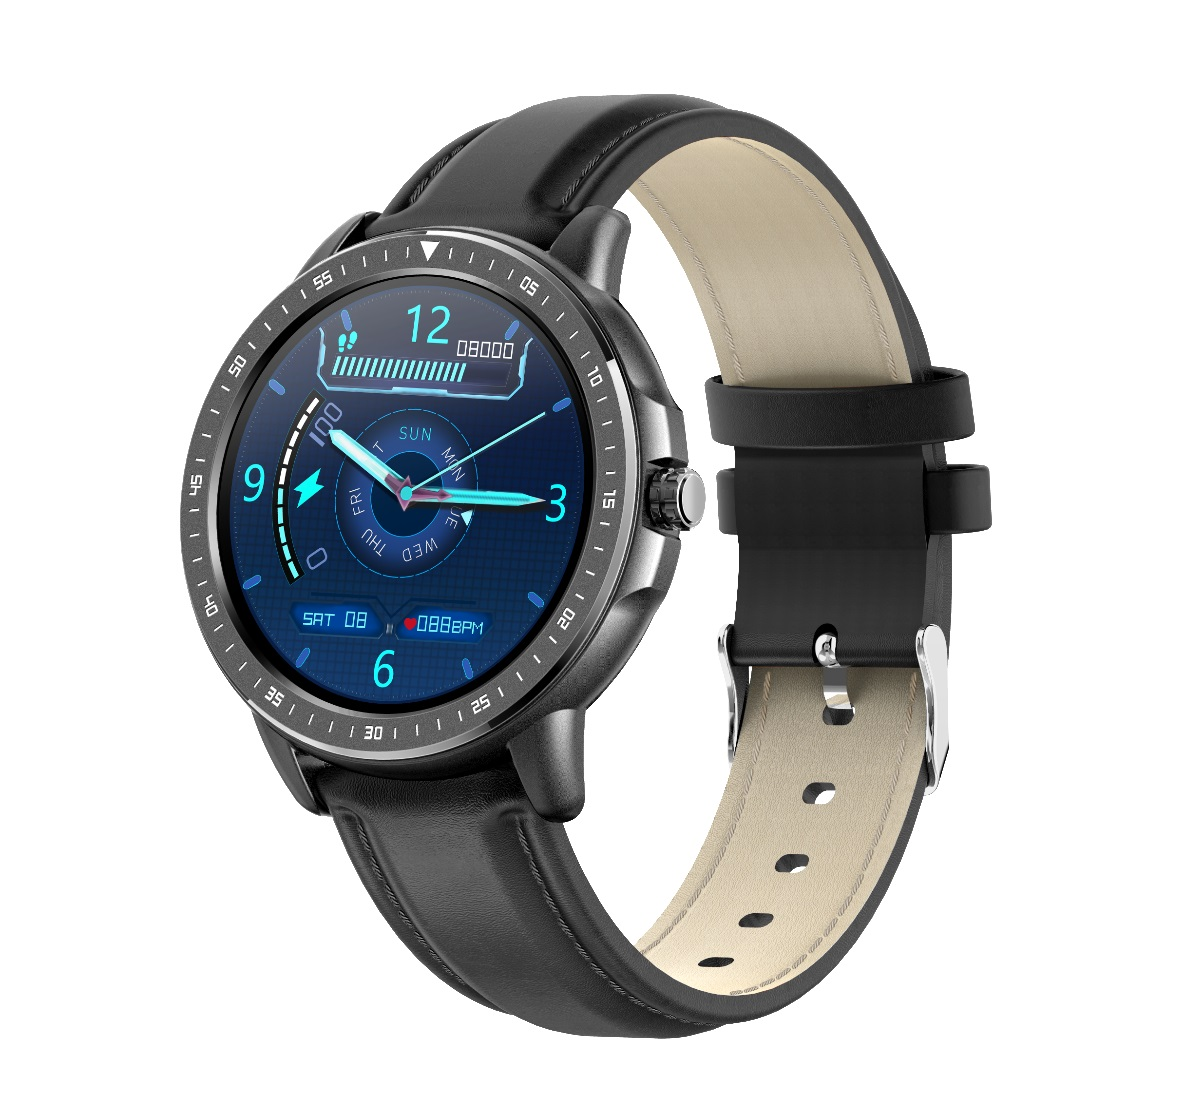 CF19 Smart Bracelet Round Dial 240*240 Touch Screen Heart Rate Monitor Step Counts IP67 Waterproof Wristwatch black